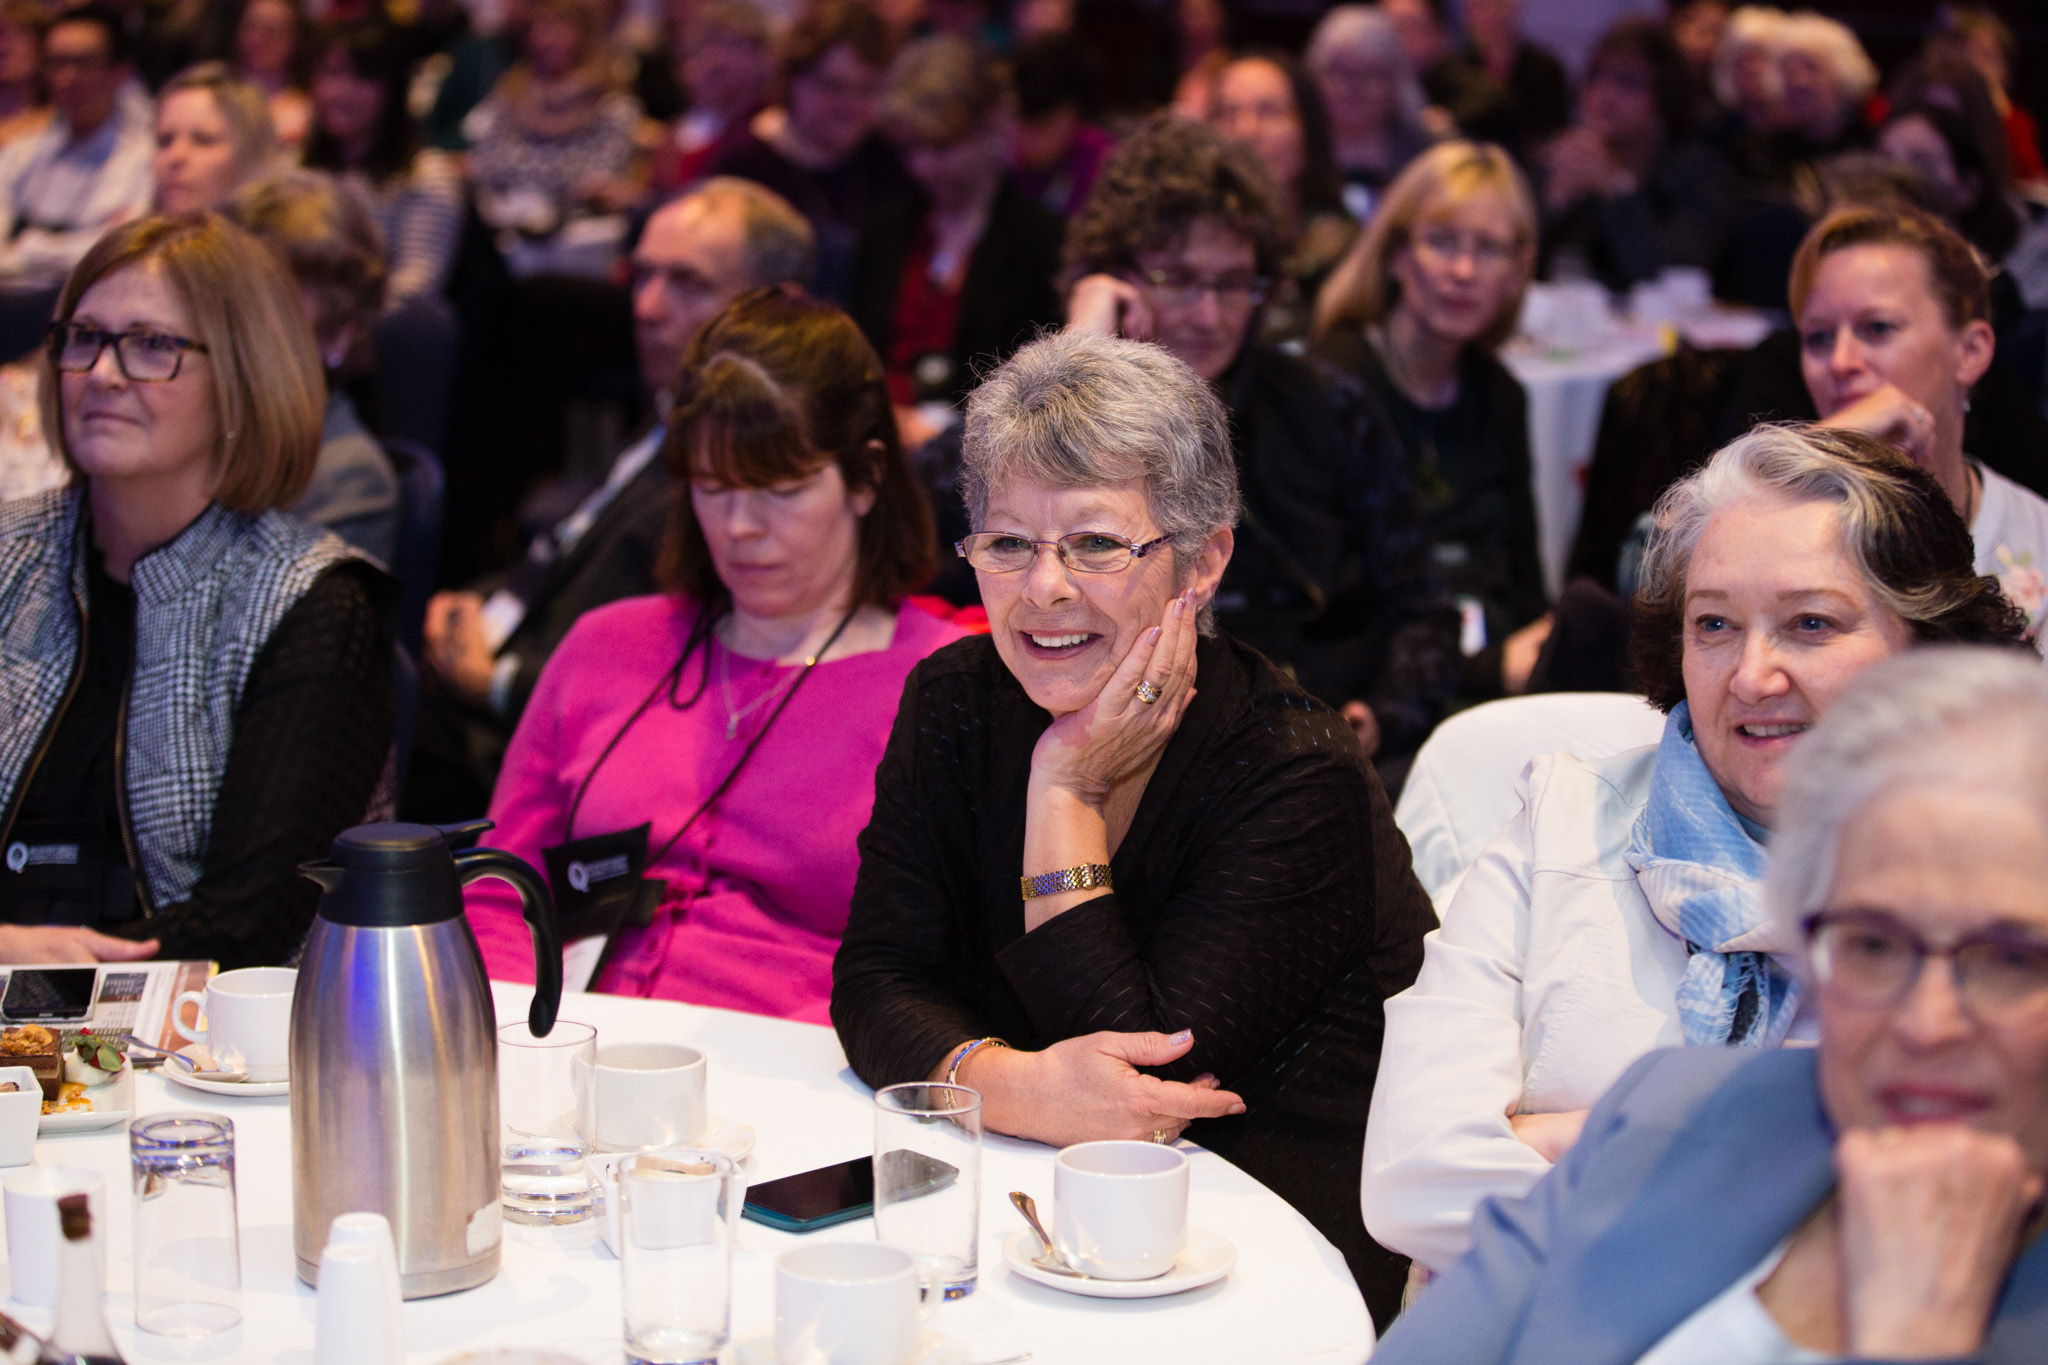 A woman smiles while listening to a speech at the BC Quality Forum